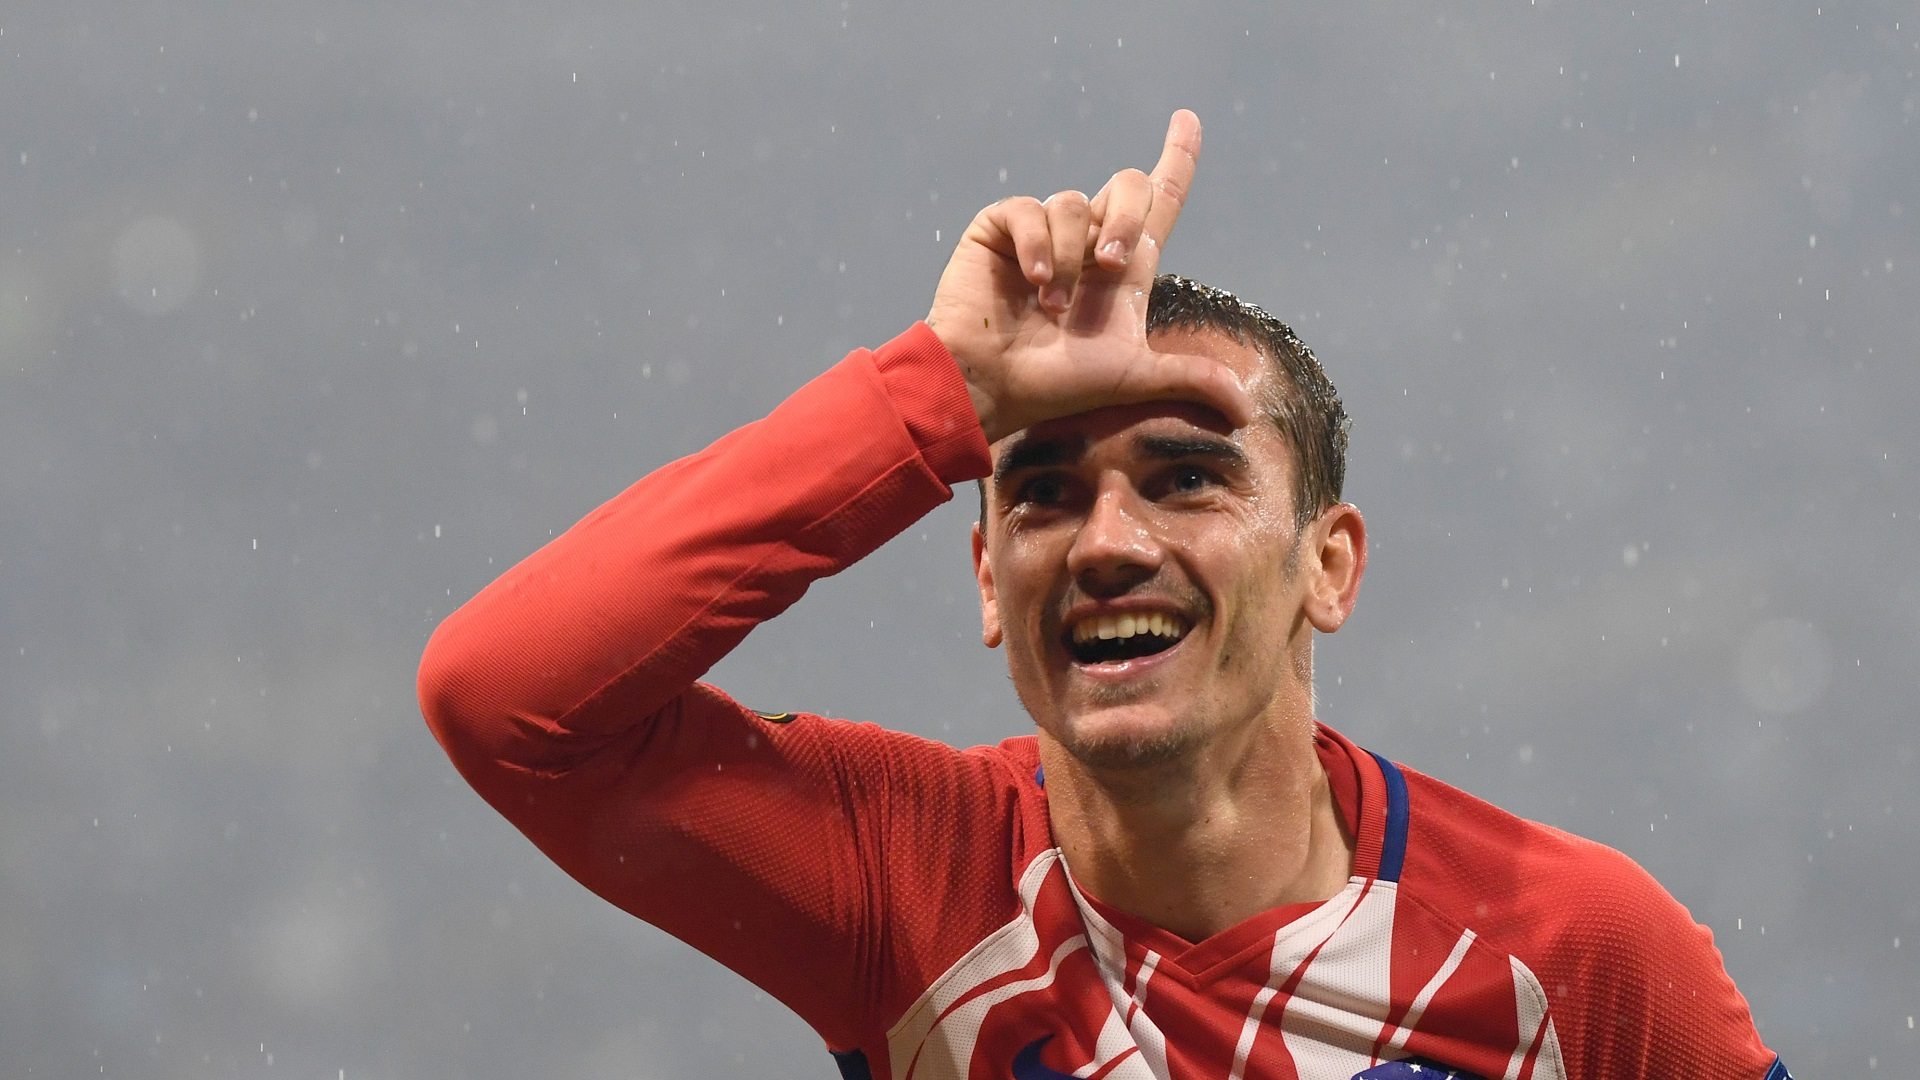 Antoine Griezmann to Barcelona: Atletico Madrid star coy on transfer speculation